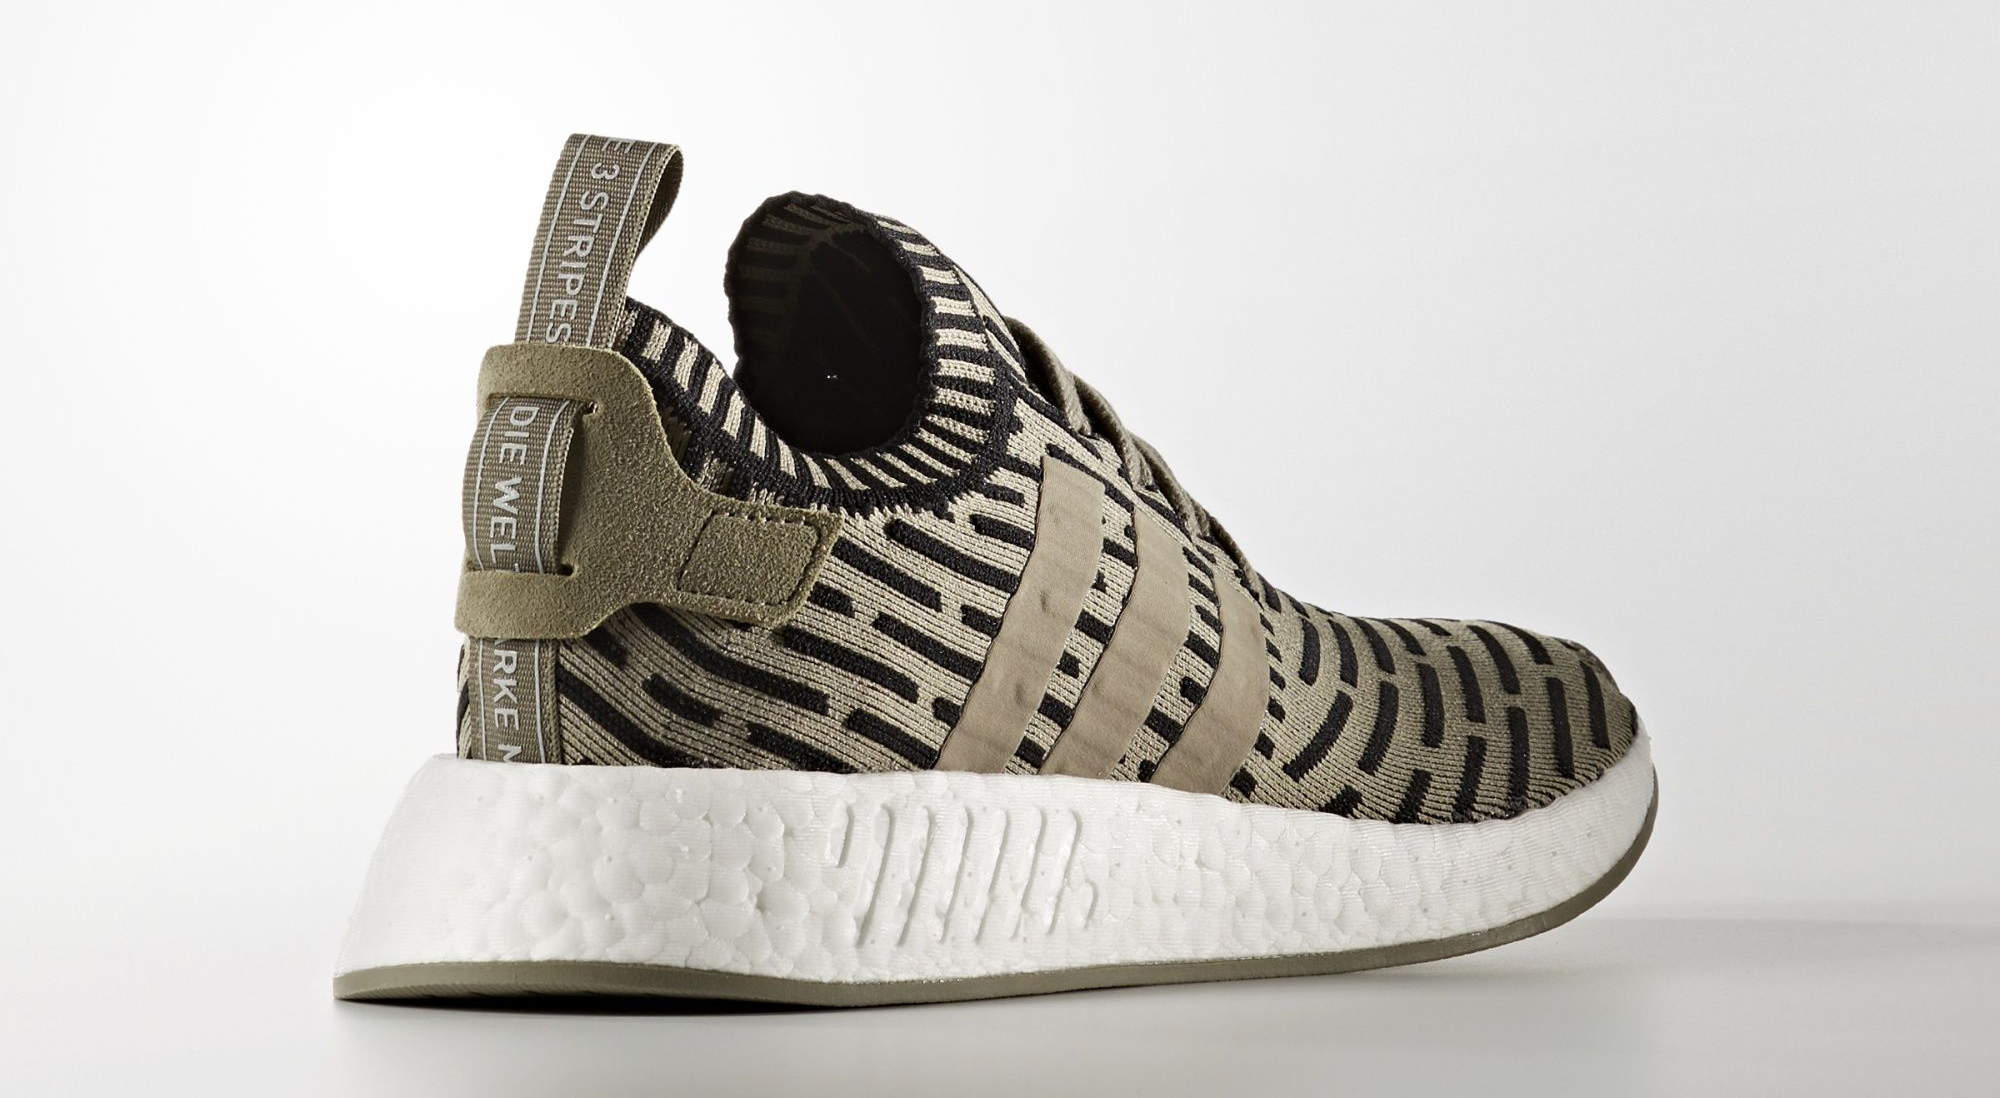 The adidas NMD R2 Gets Two More Colorways hubwav